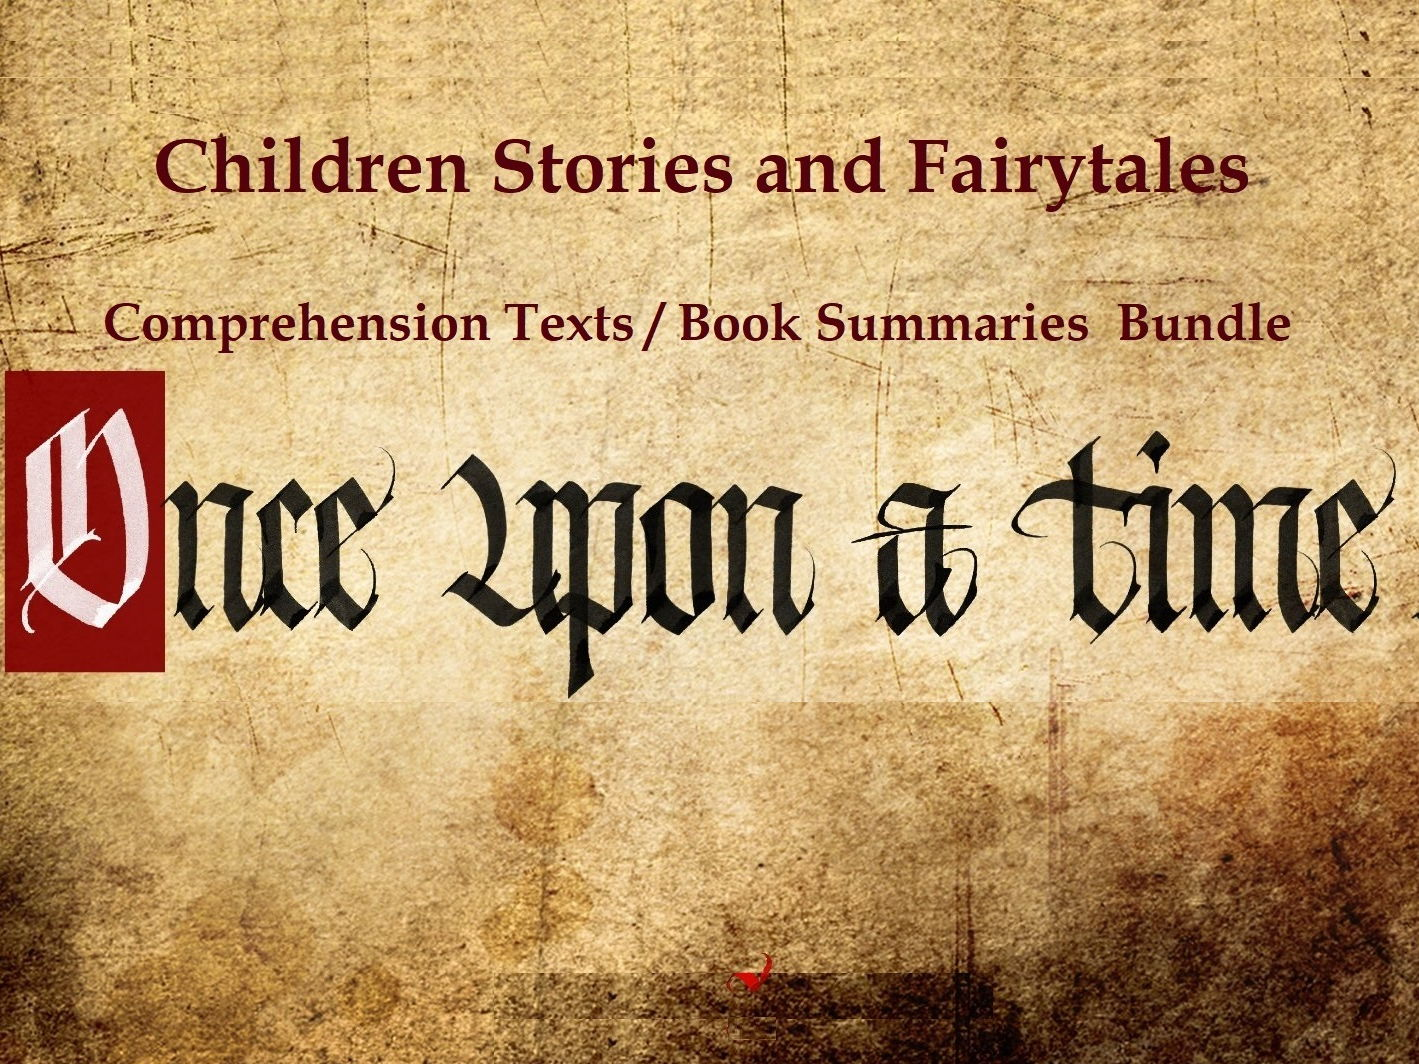 Children Stories and Fairytales - Comprehension Texts / Book Summaries  Bundle (SAVE  75%)